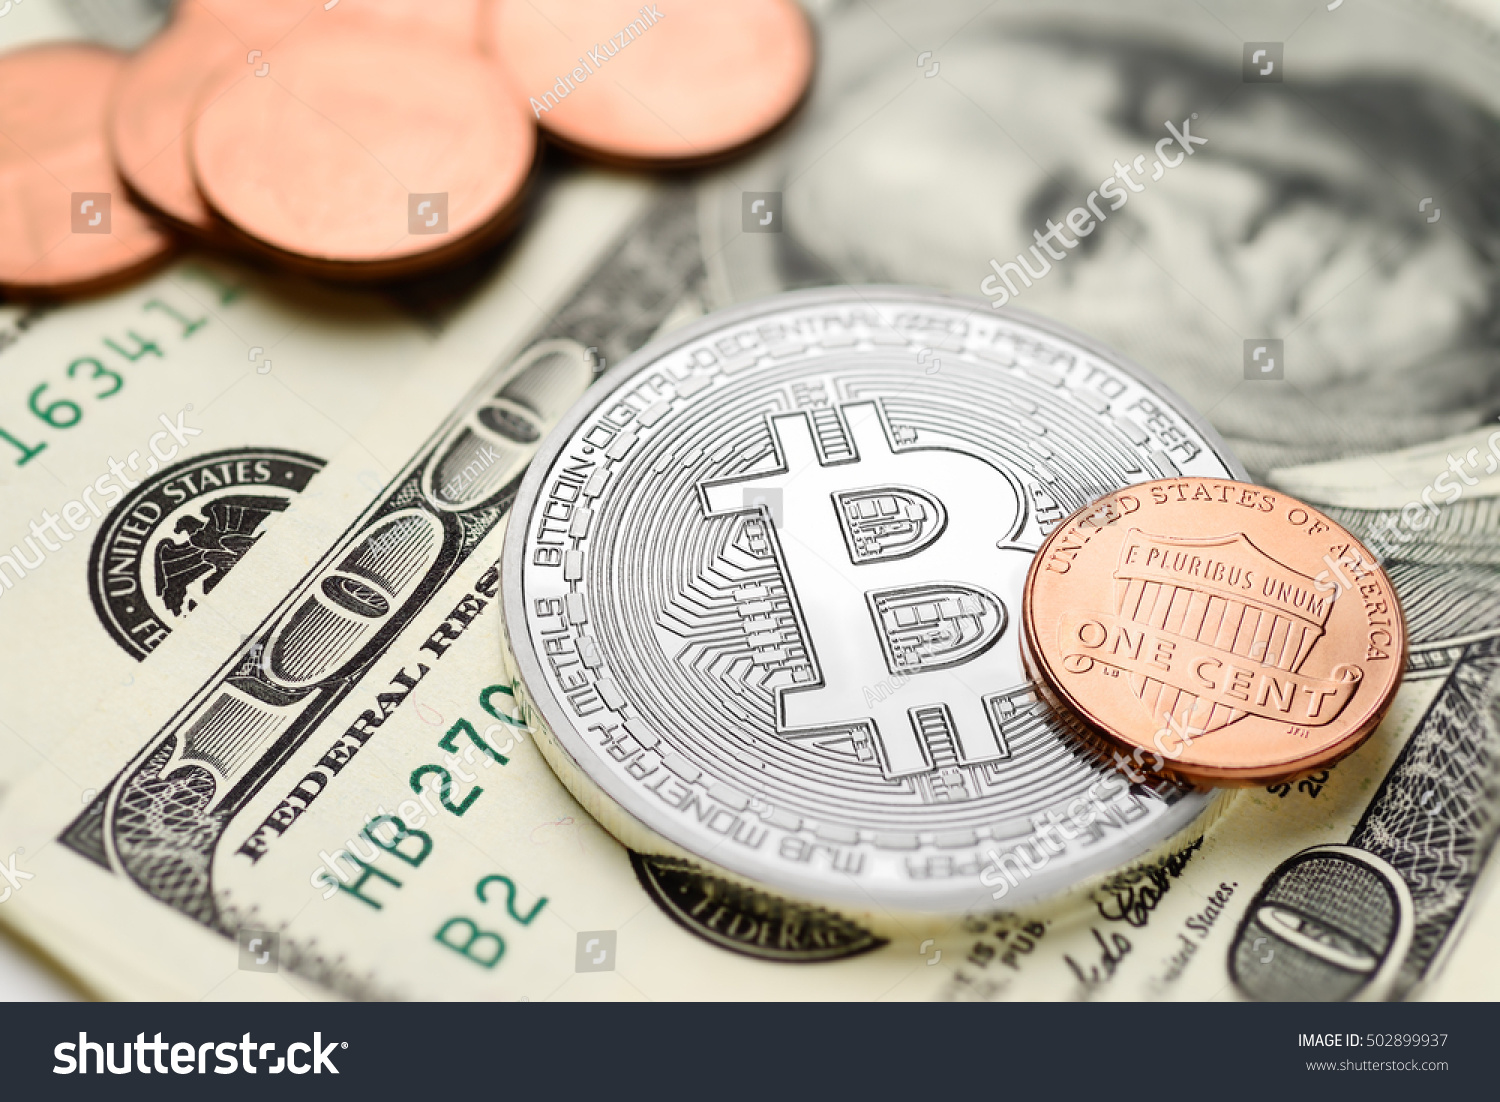 Bitcoin silver exchange opening a bitcoin wallet daily payouts with swiss gold global 20 gold silver crypto exchange packages and bitcoin mining payoutnvert ounces of silvers to ccuart Image collections